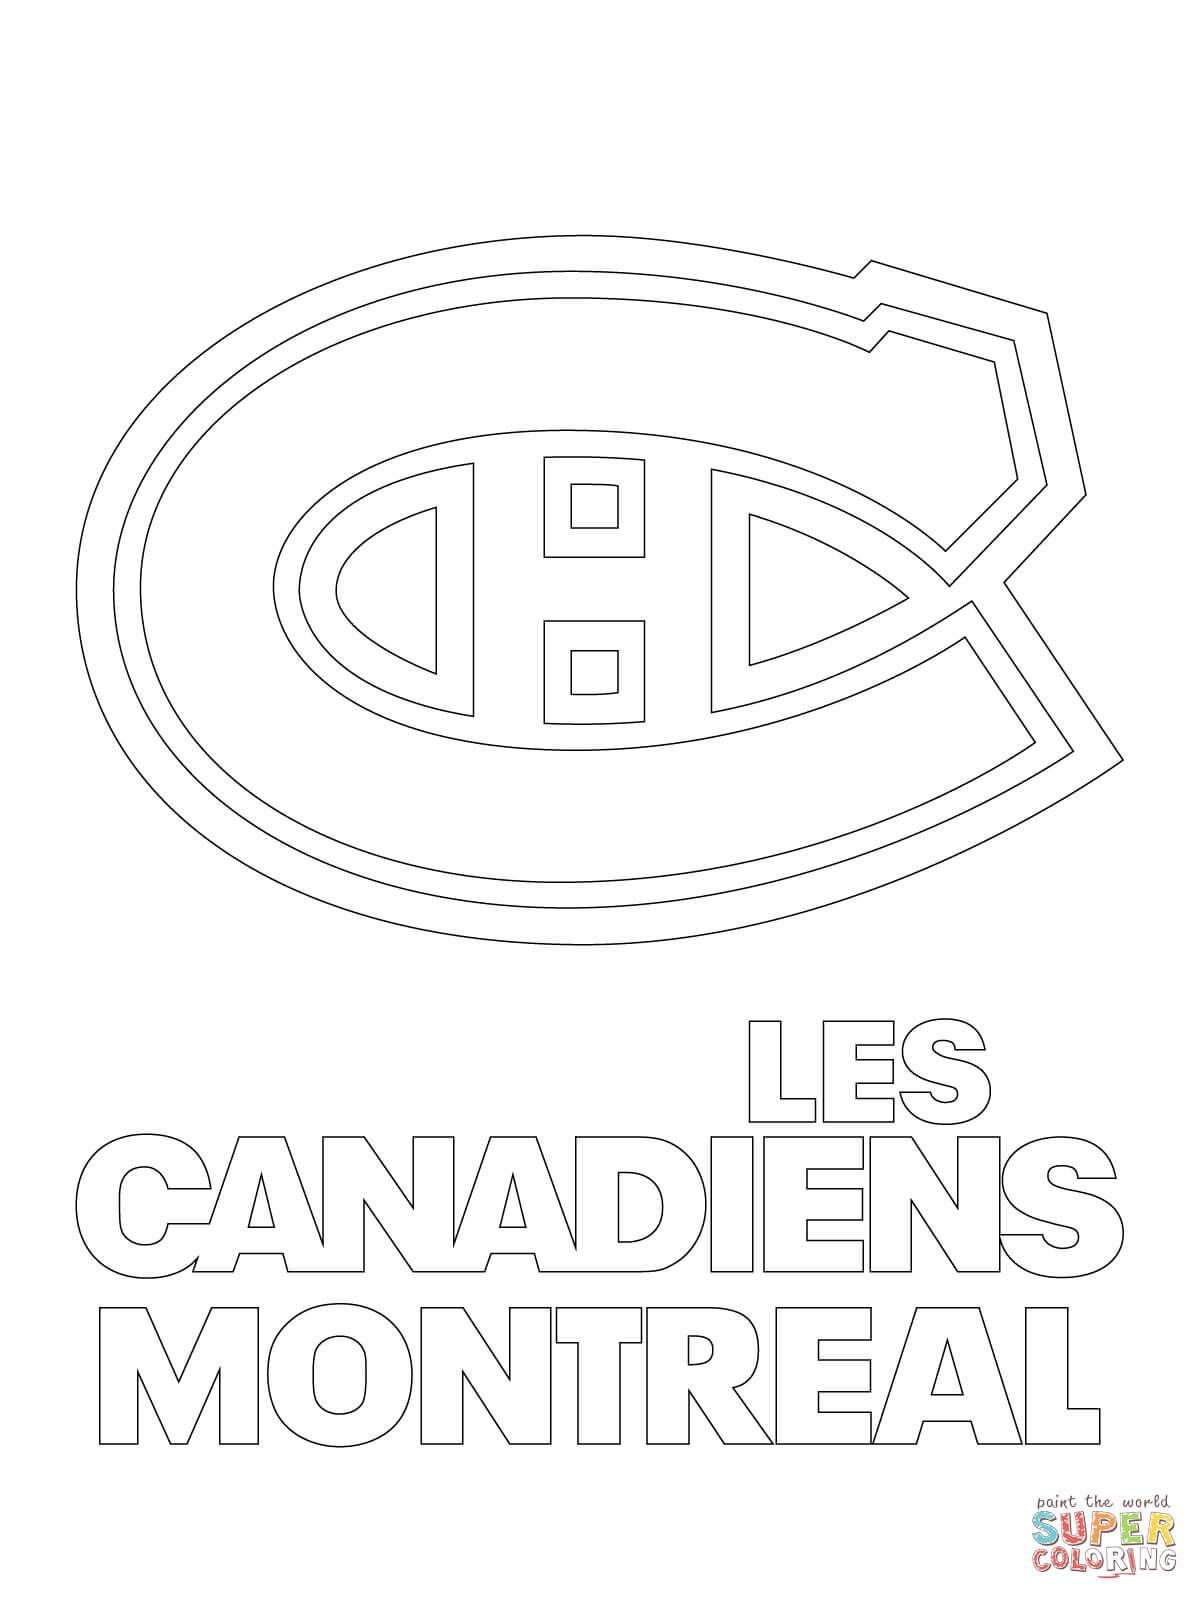 Montreal Canadiens Logo | Super Coloring | Food | Pinterest